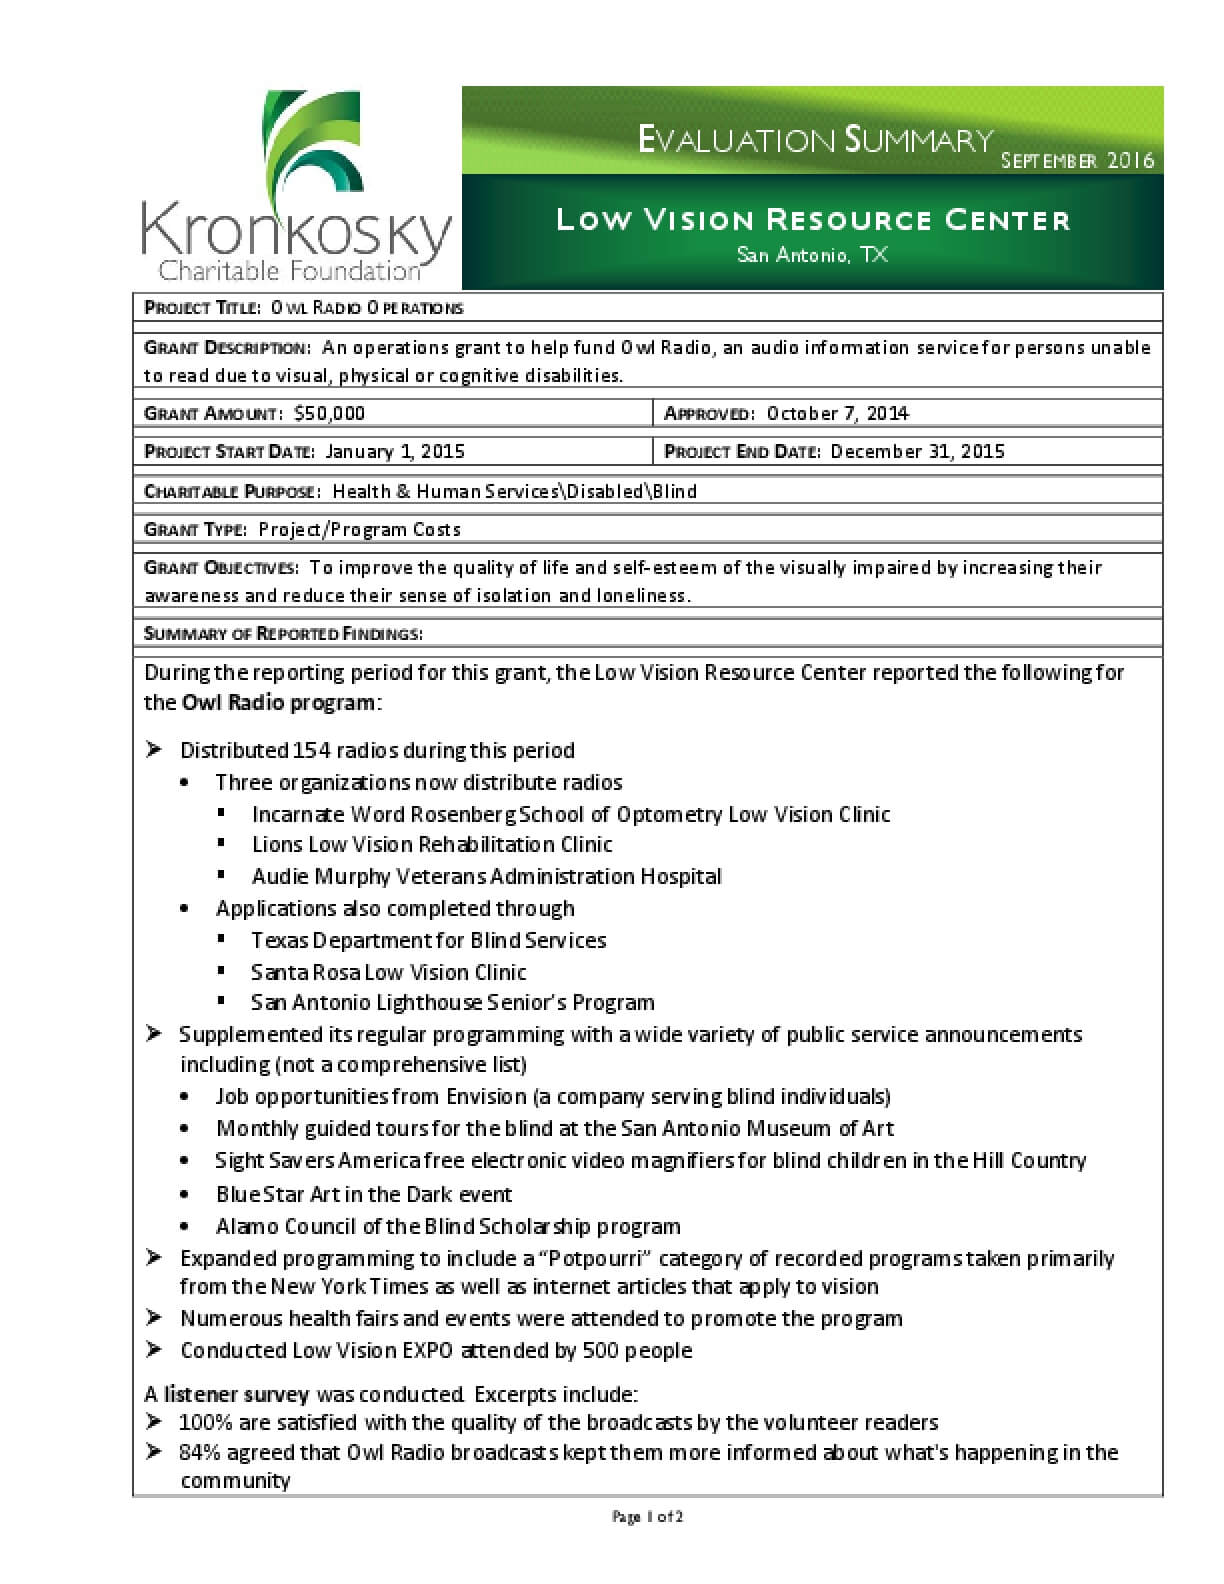 Low Vision Resource Center Evaluation Summary